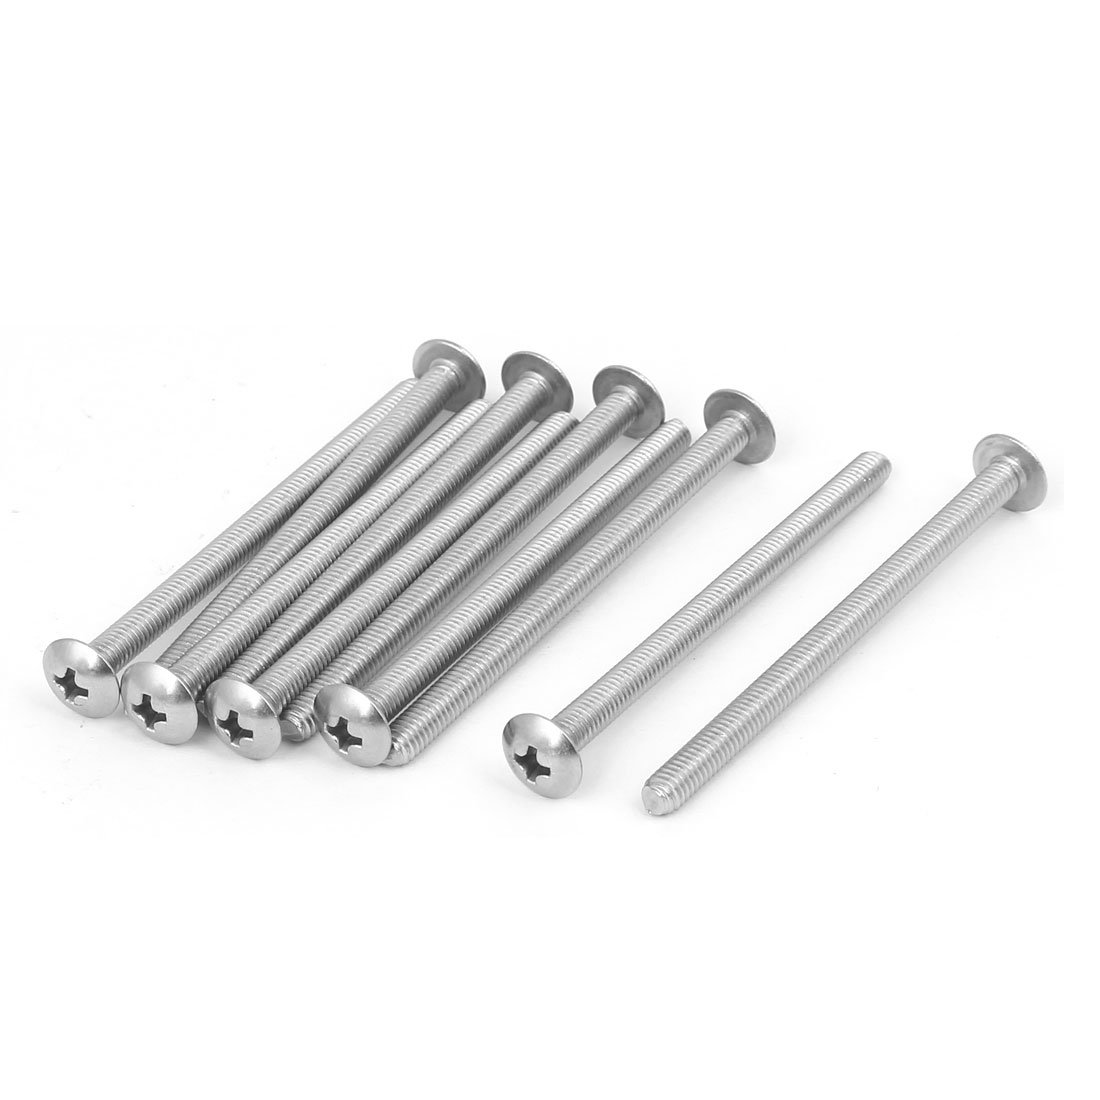 uxcell M4x60mm 316 Stainless Steel Truss Phillips Head Machine Screw Silver Tone 10pcs